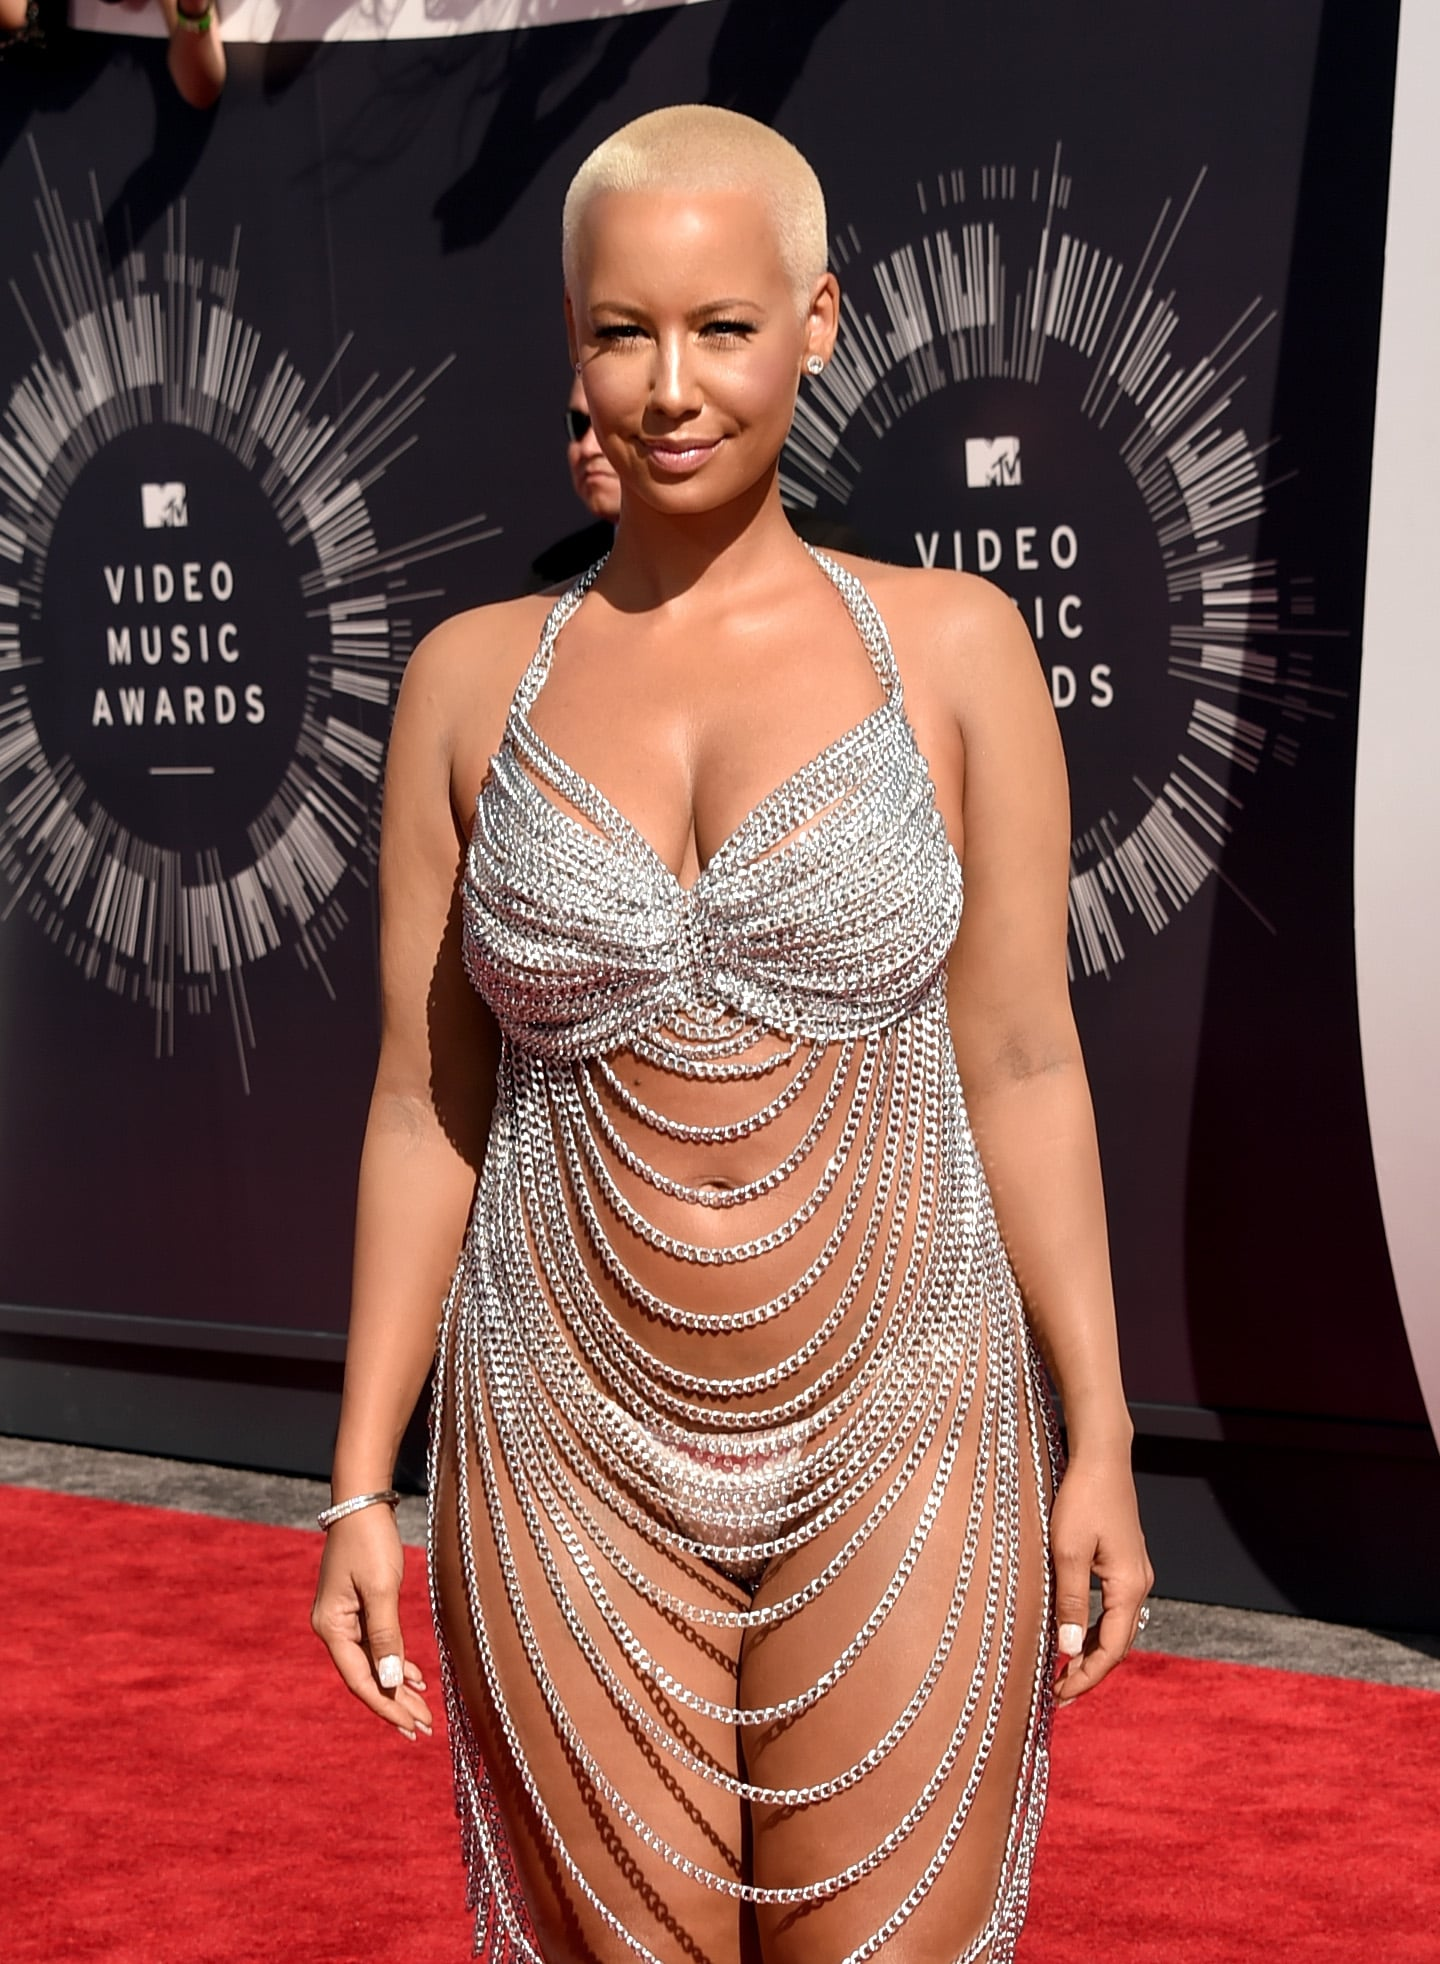 Amber Rose Leaves Almost Nothing to the Imagination on the VMAs Red Carpet